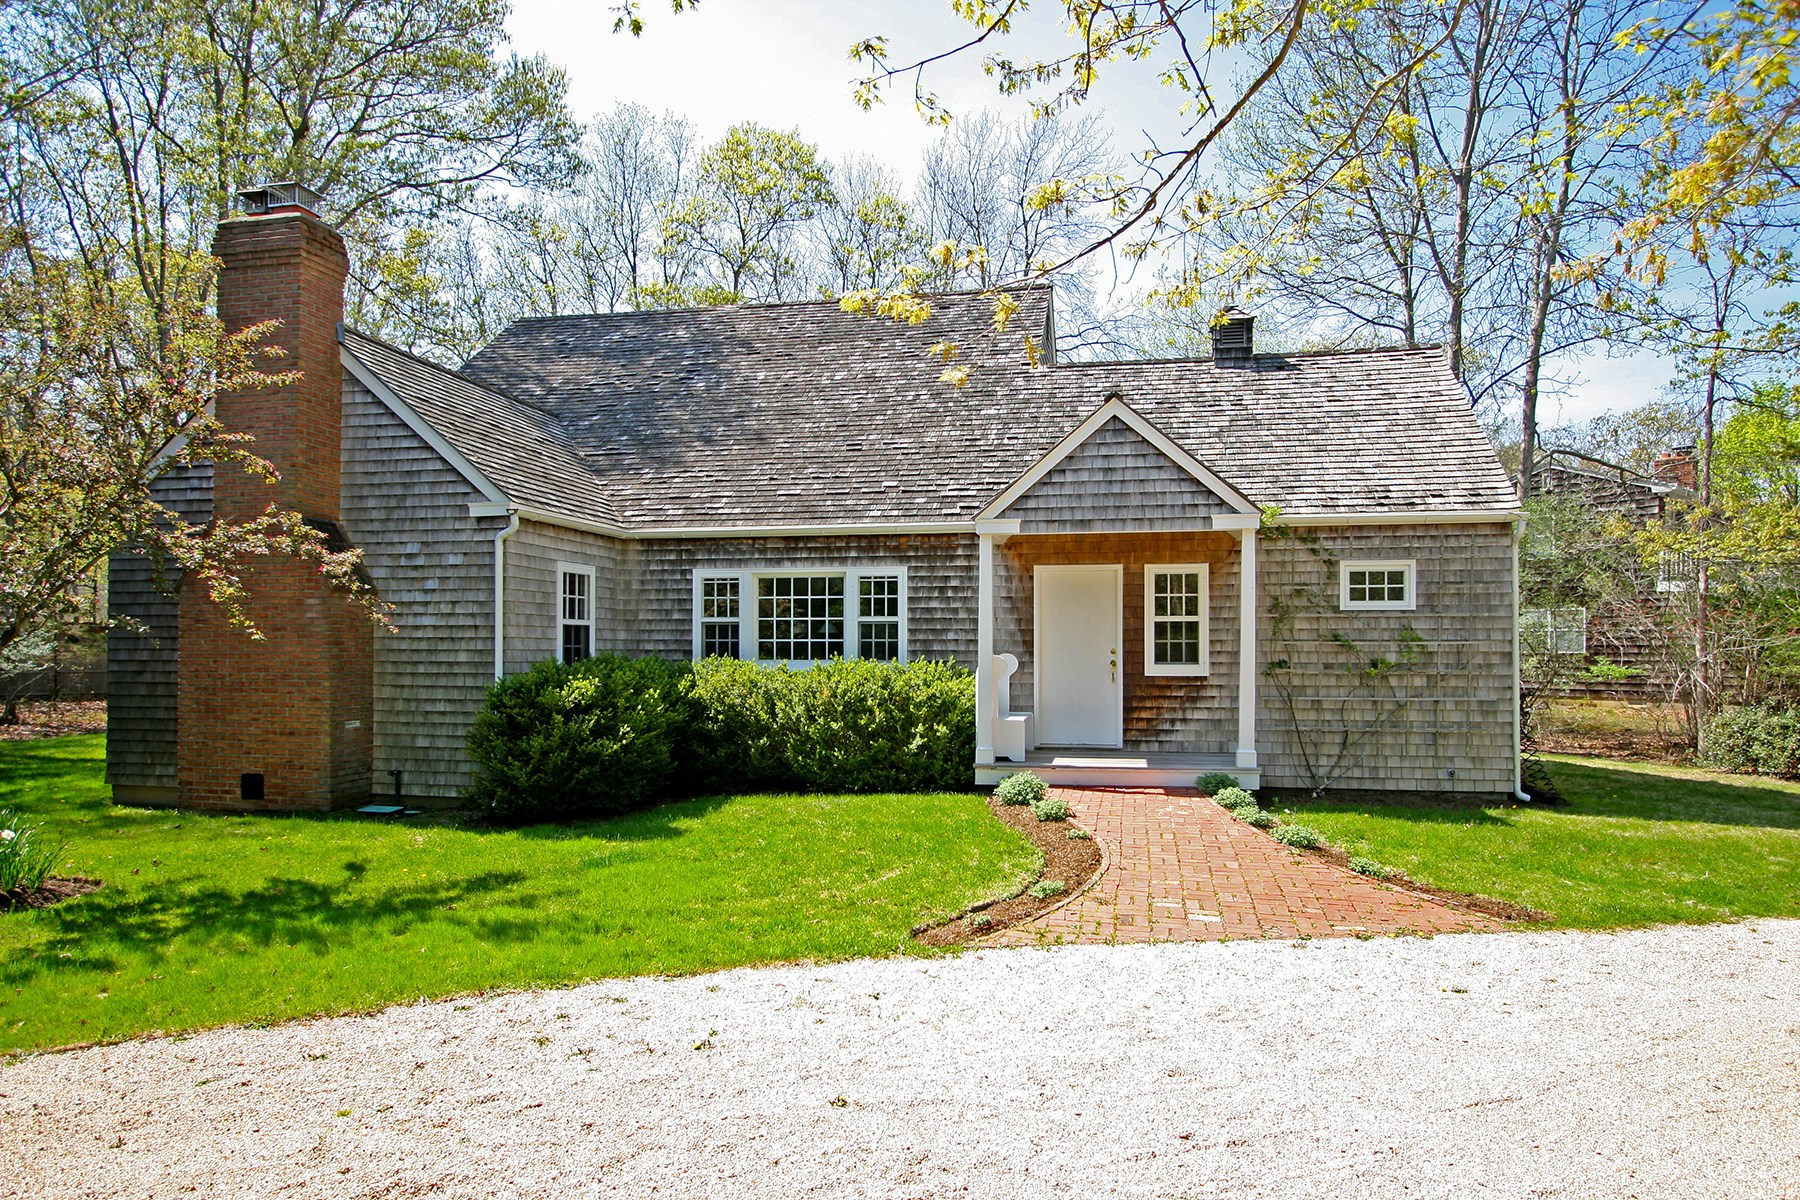 Single Family Home for Sale at Serenity in Springs East Hampton, New York 11937 United States